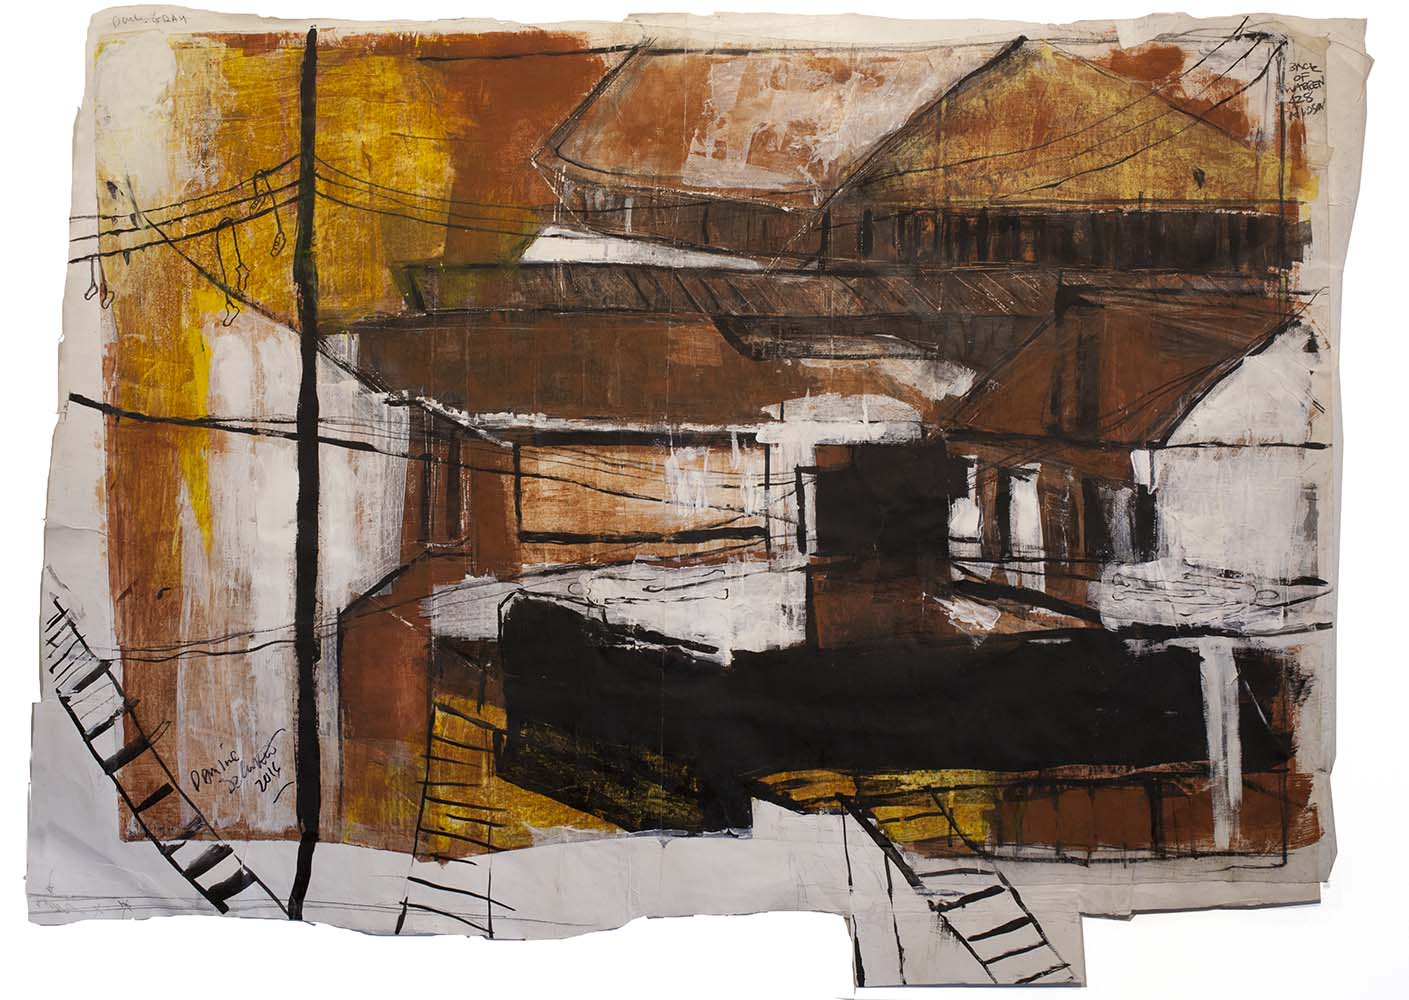 27. INDUSTRY I, 2015, mixed media on paper, 51 x 37 inches.jpg